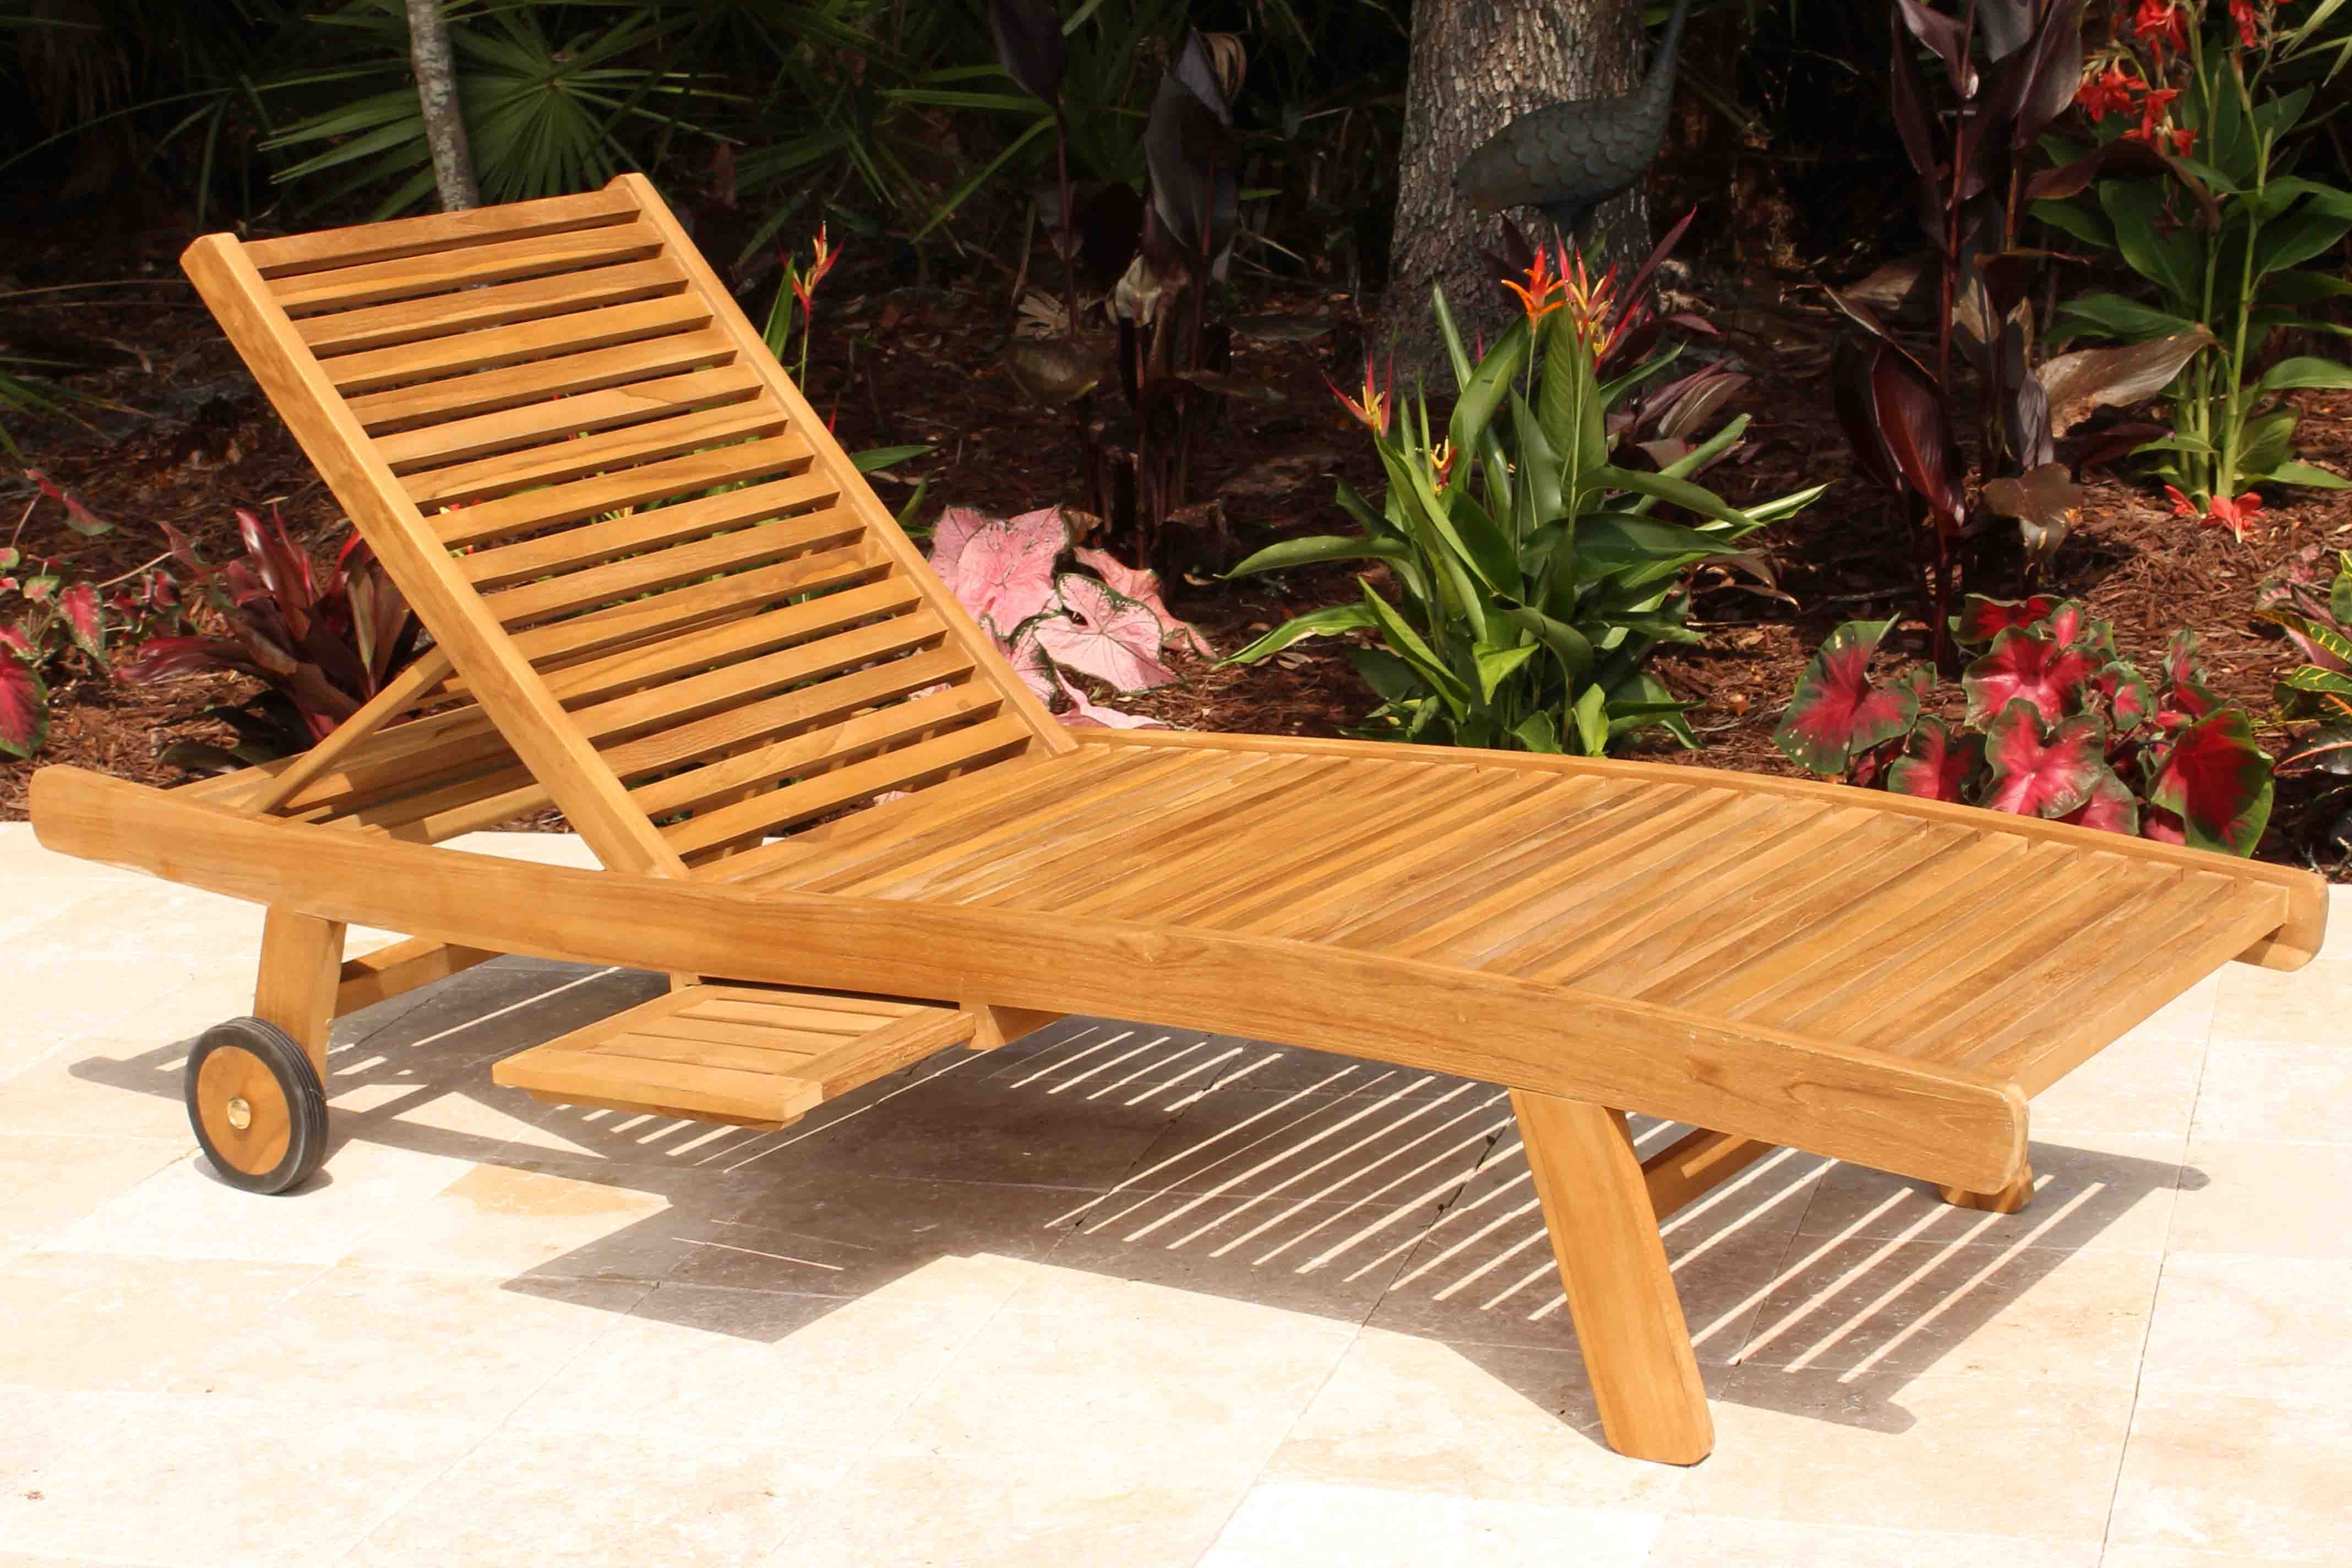 Well Known Teak Chaise Lounge Used — Teak Furnitures : Outdoor Teak Lounge Intended For Hardwood Chaise Lounge Chairs (View 14 of 15)